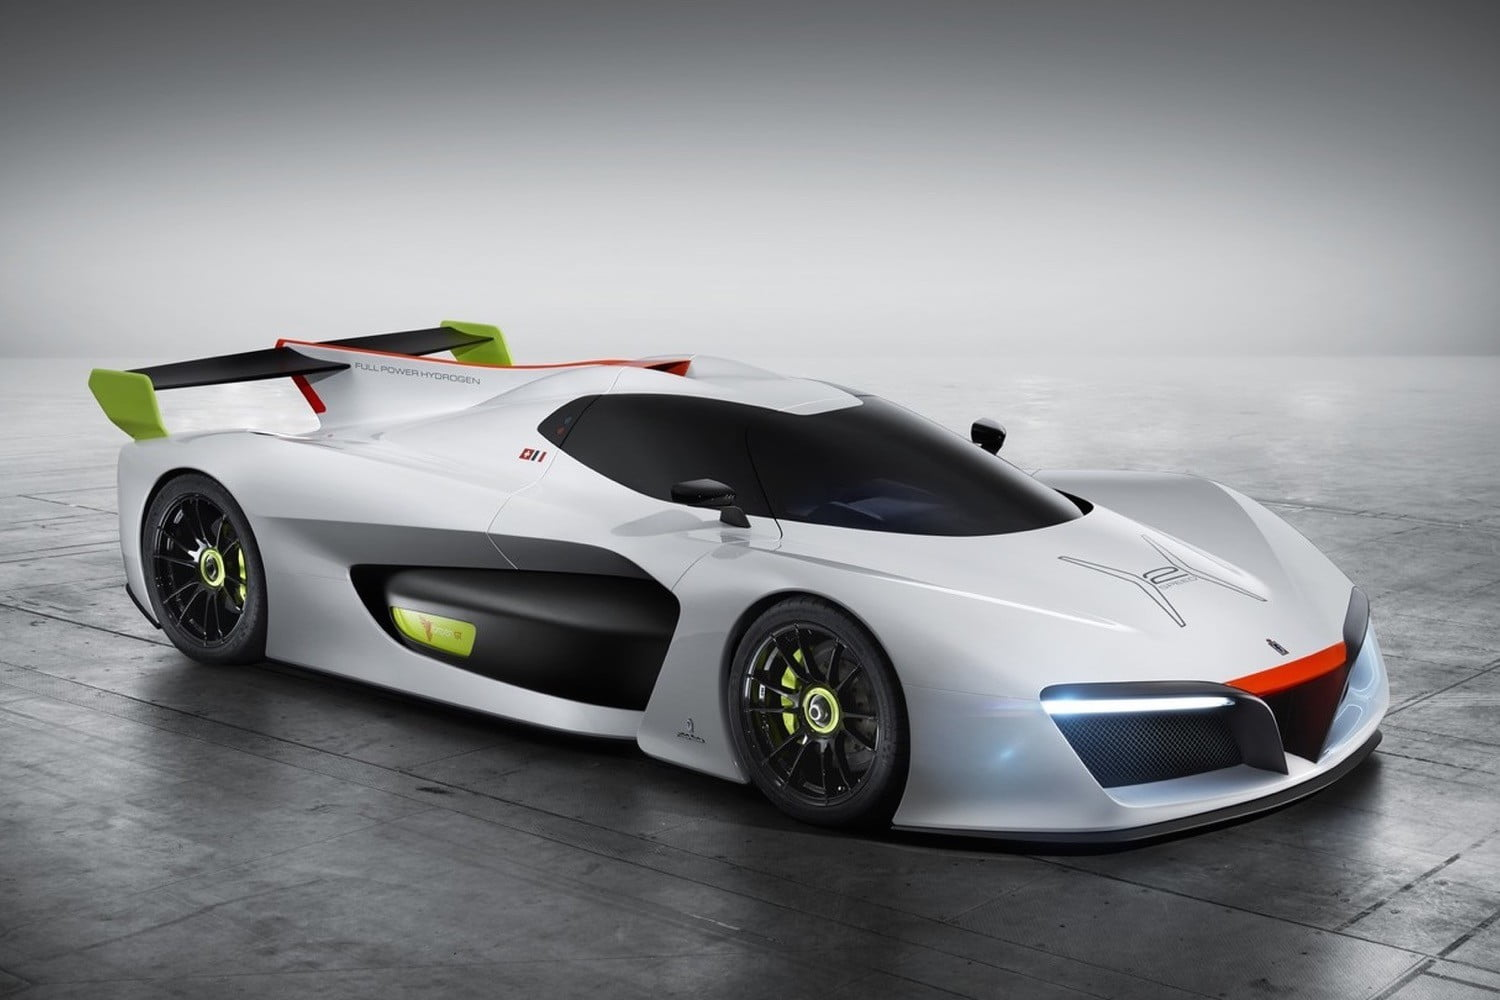 Automobili Pininfarina Will Have a New All-Electric Hypercar by 2020